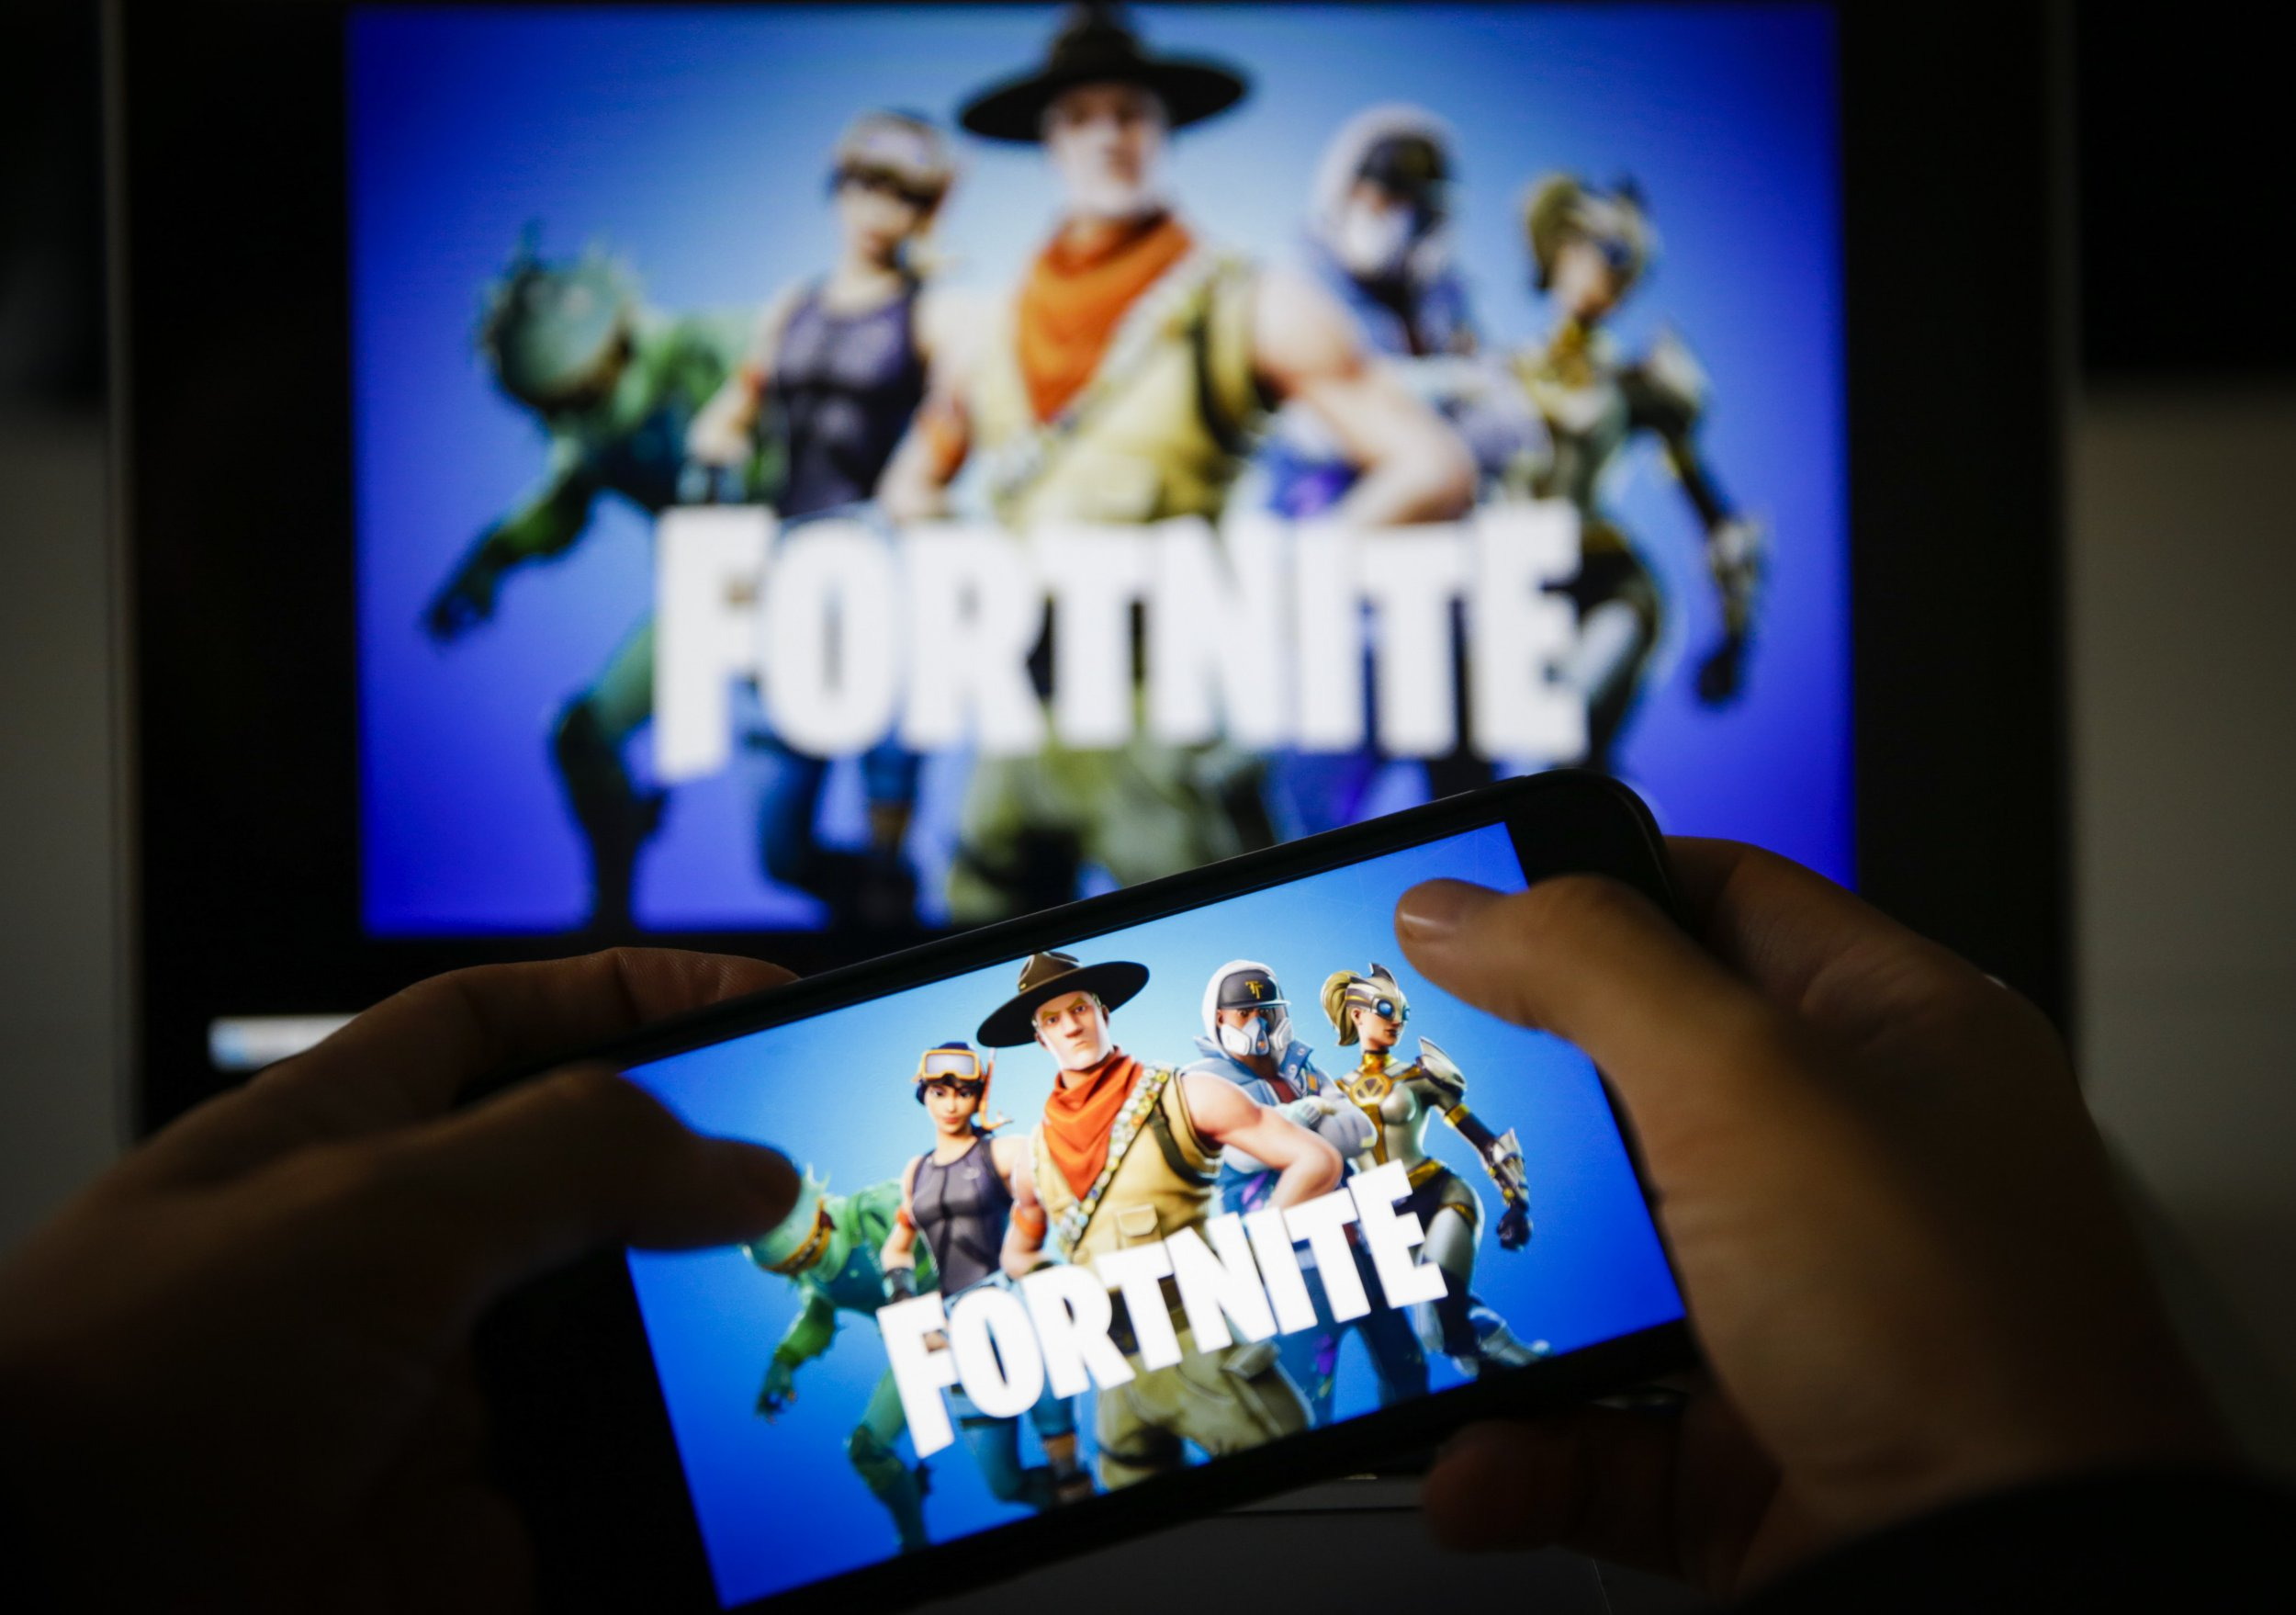 Are criminals using the hit game Fortnite to launder money?